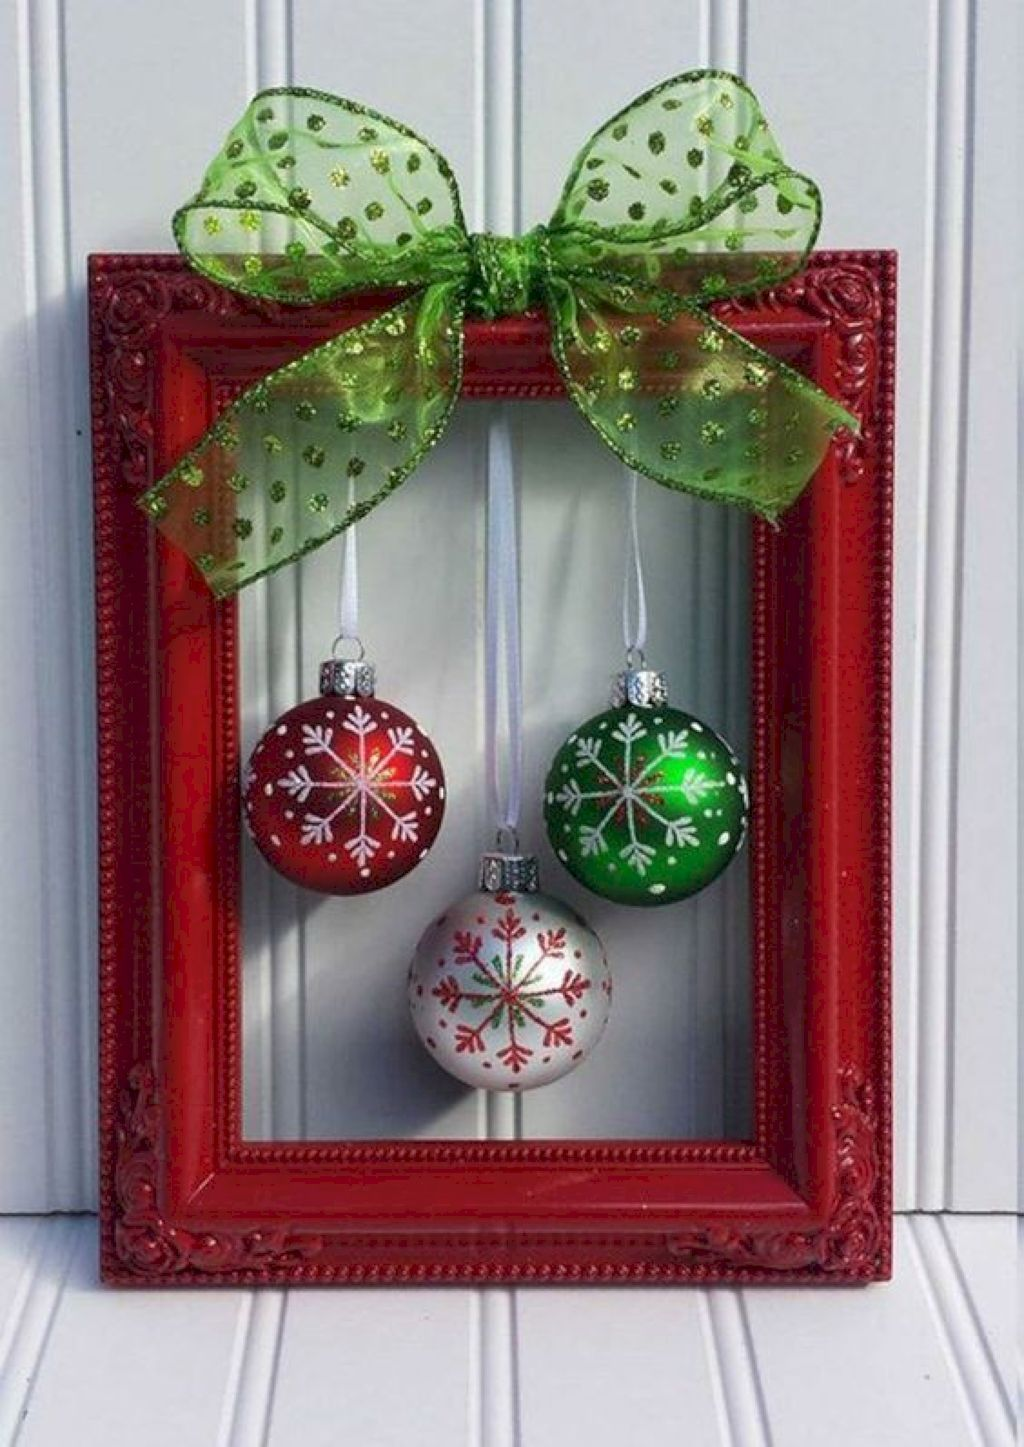 63 DIY Christmas Decorations Ideas for 2019 #holidaycraftschristmas